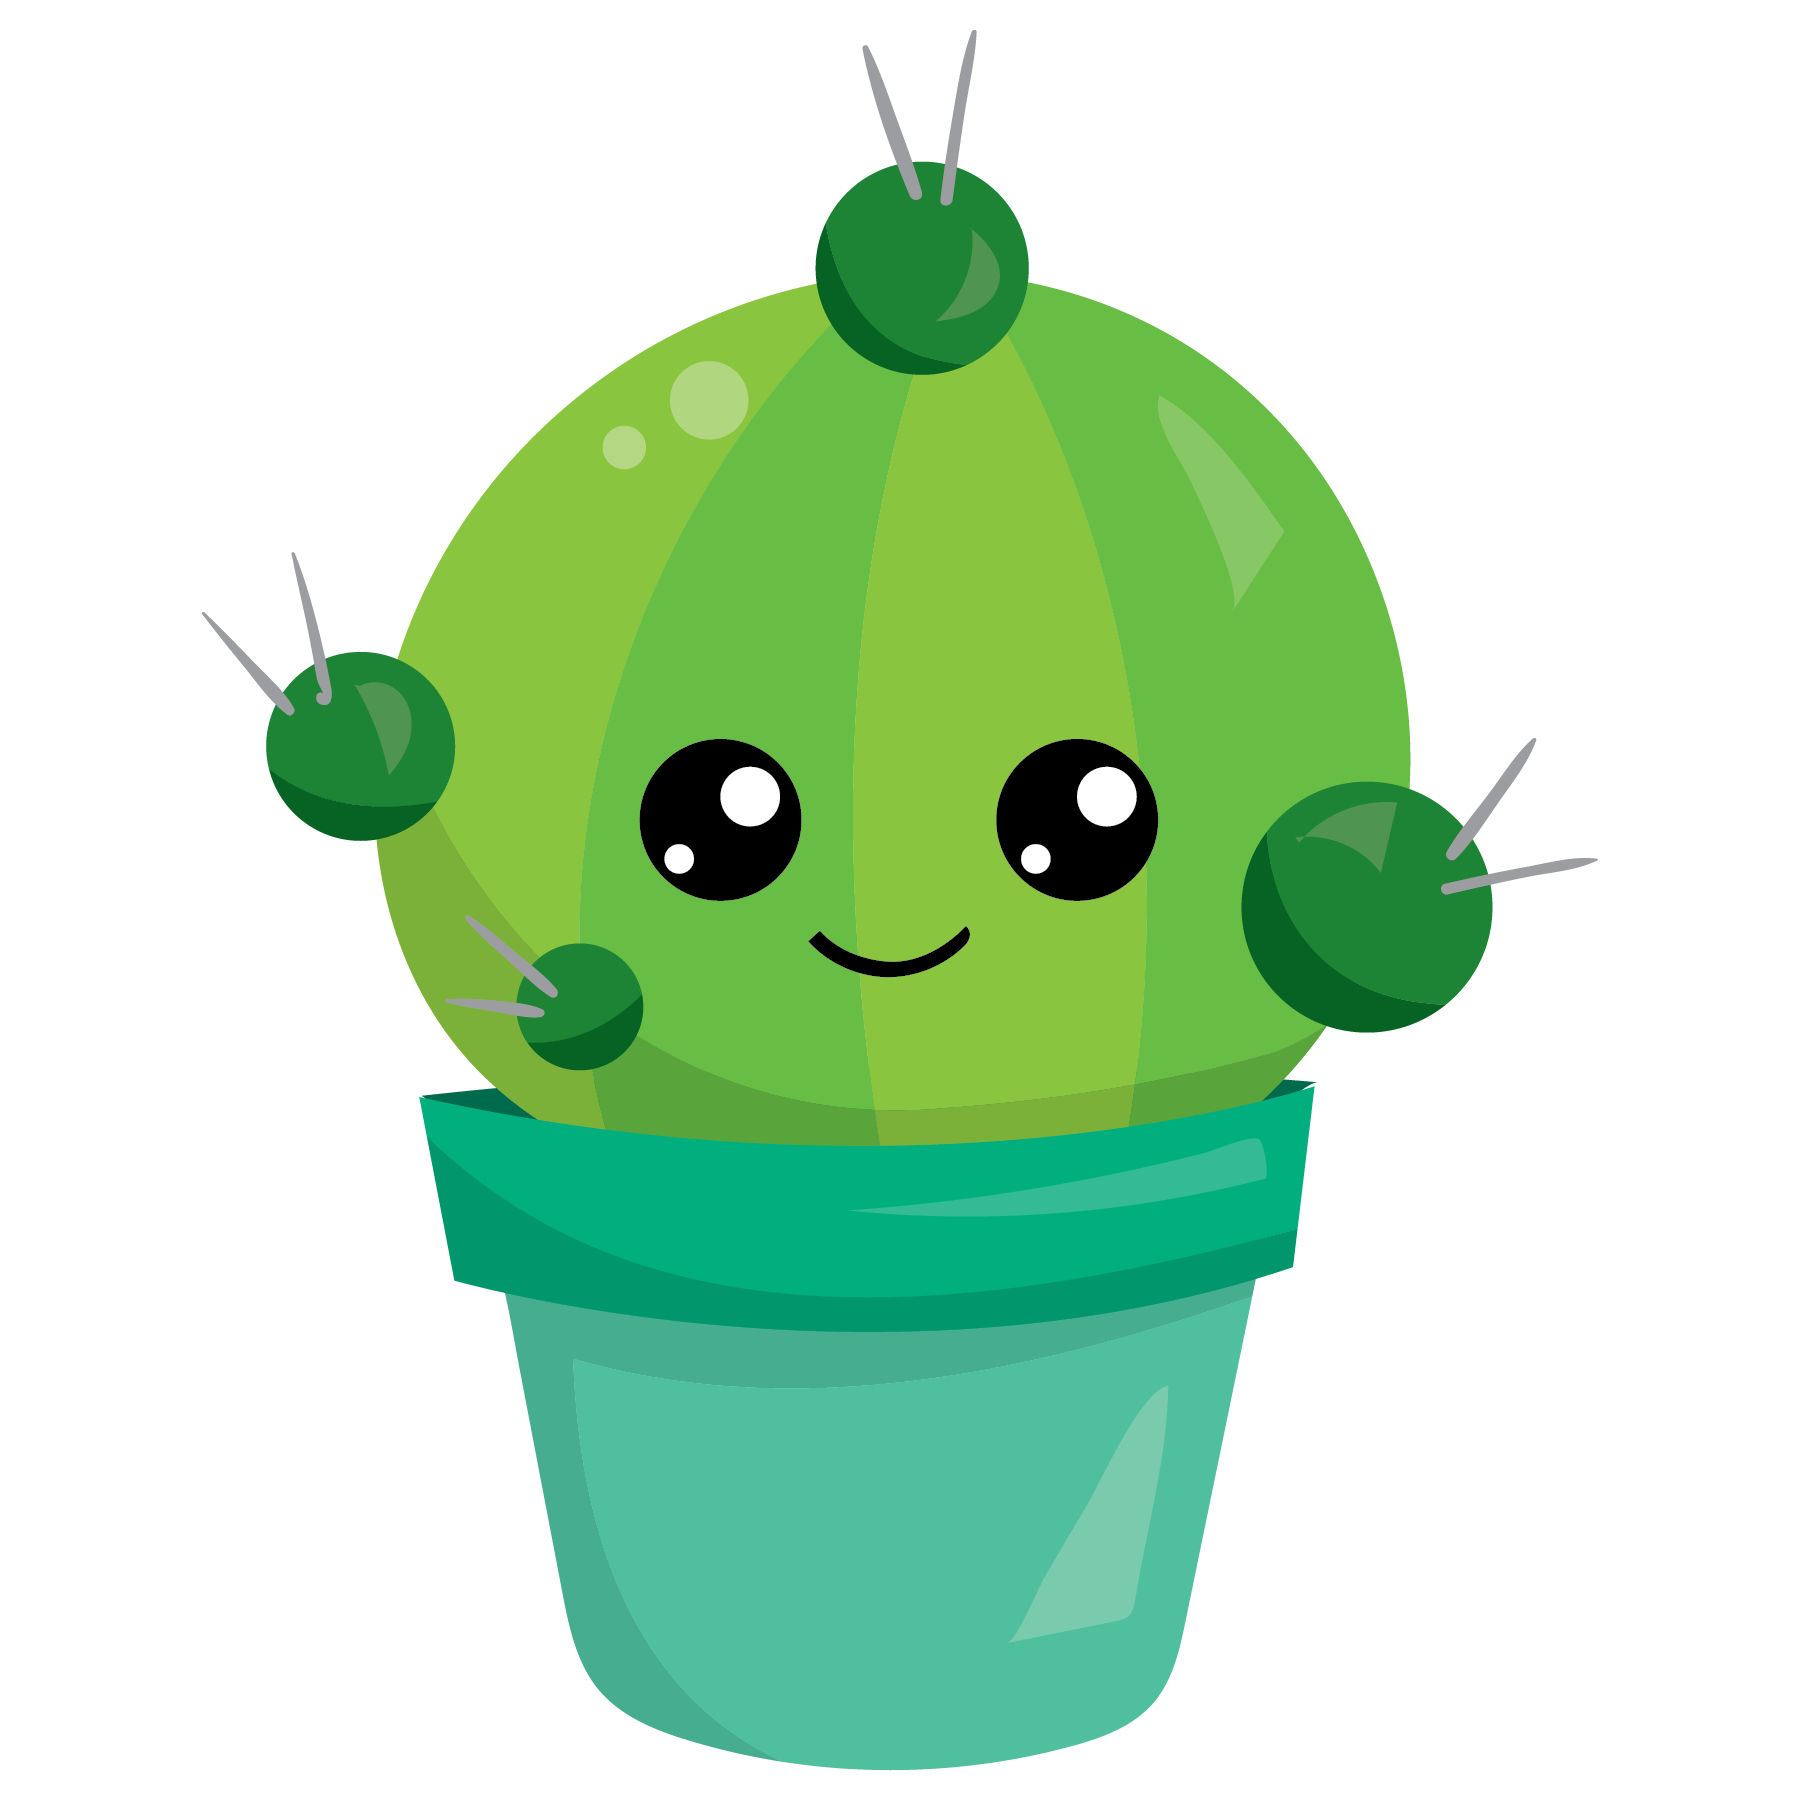 Cute cactus clipart. Kawaii green in